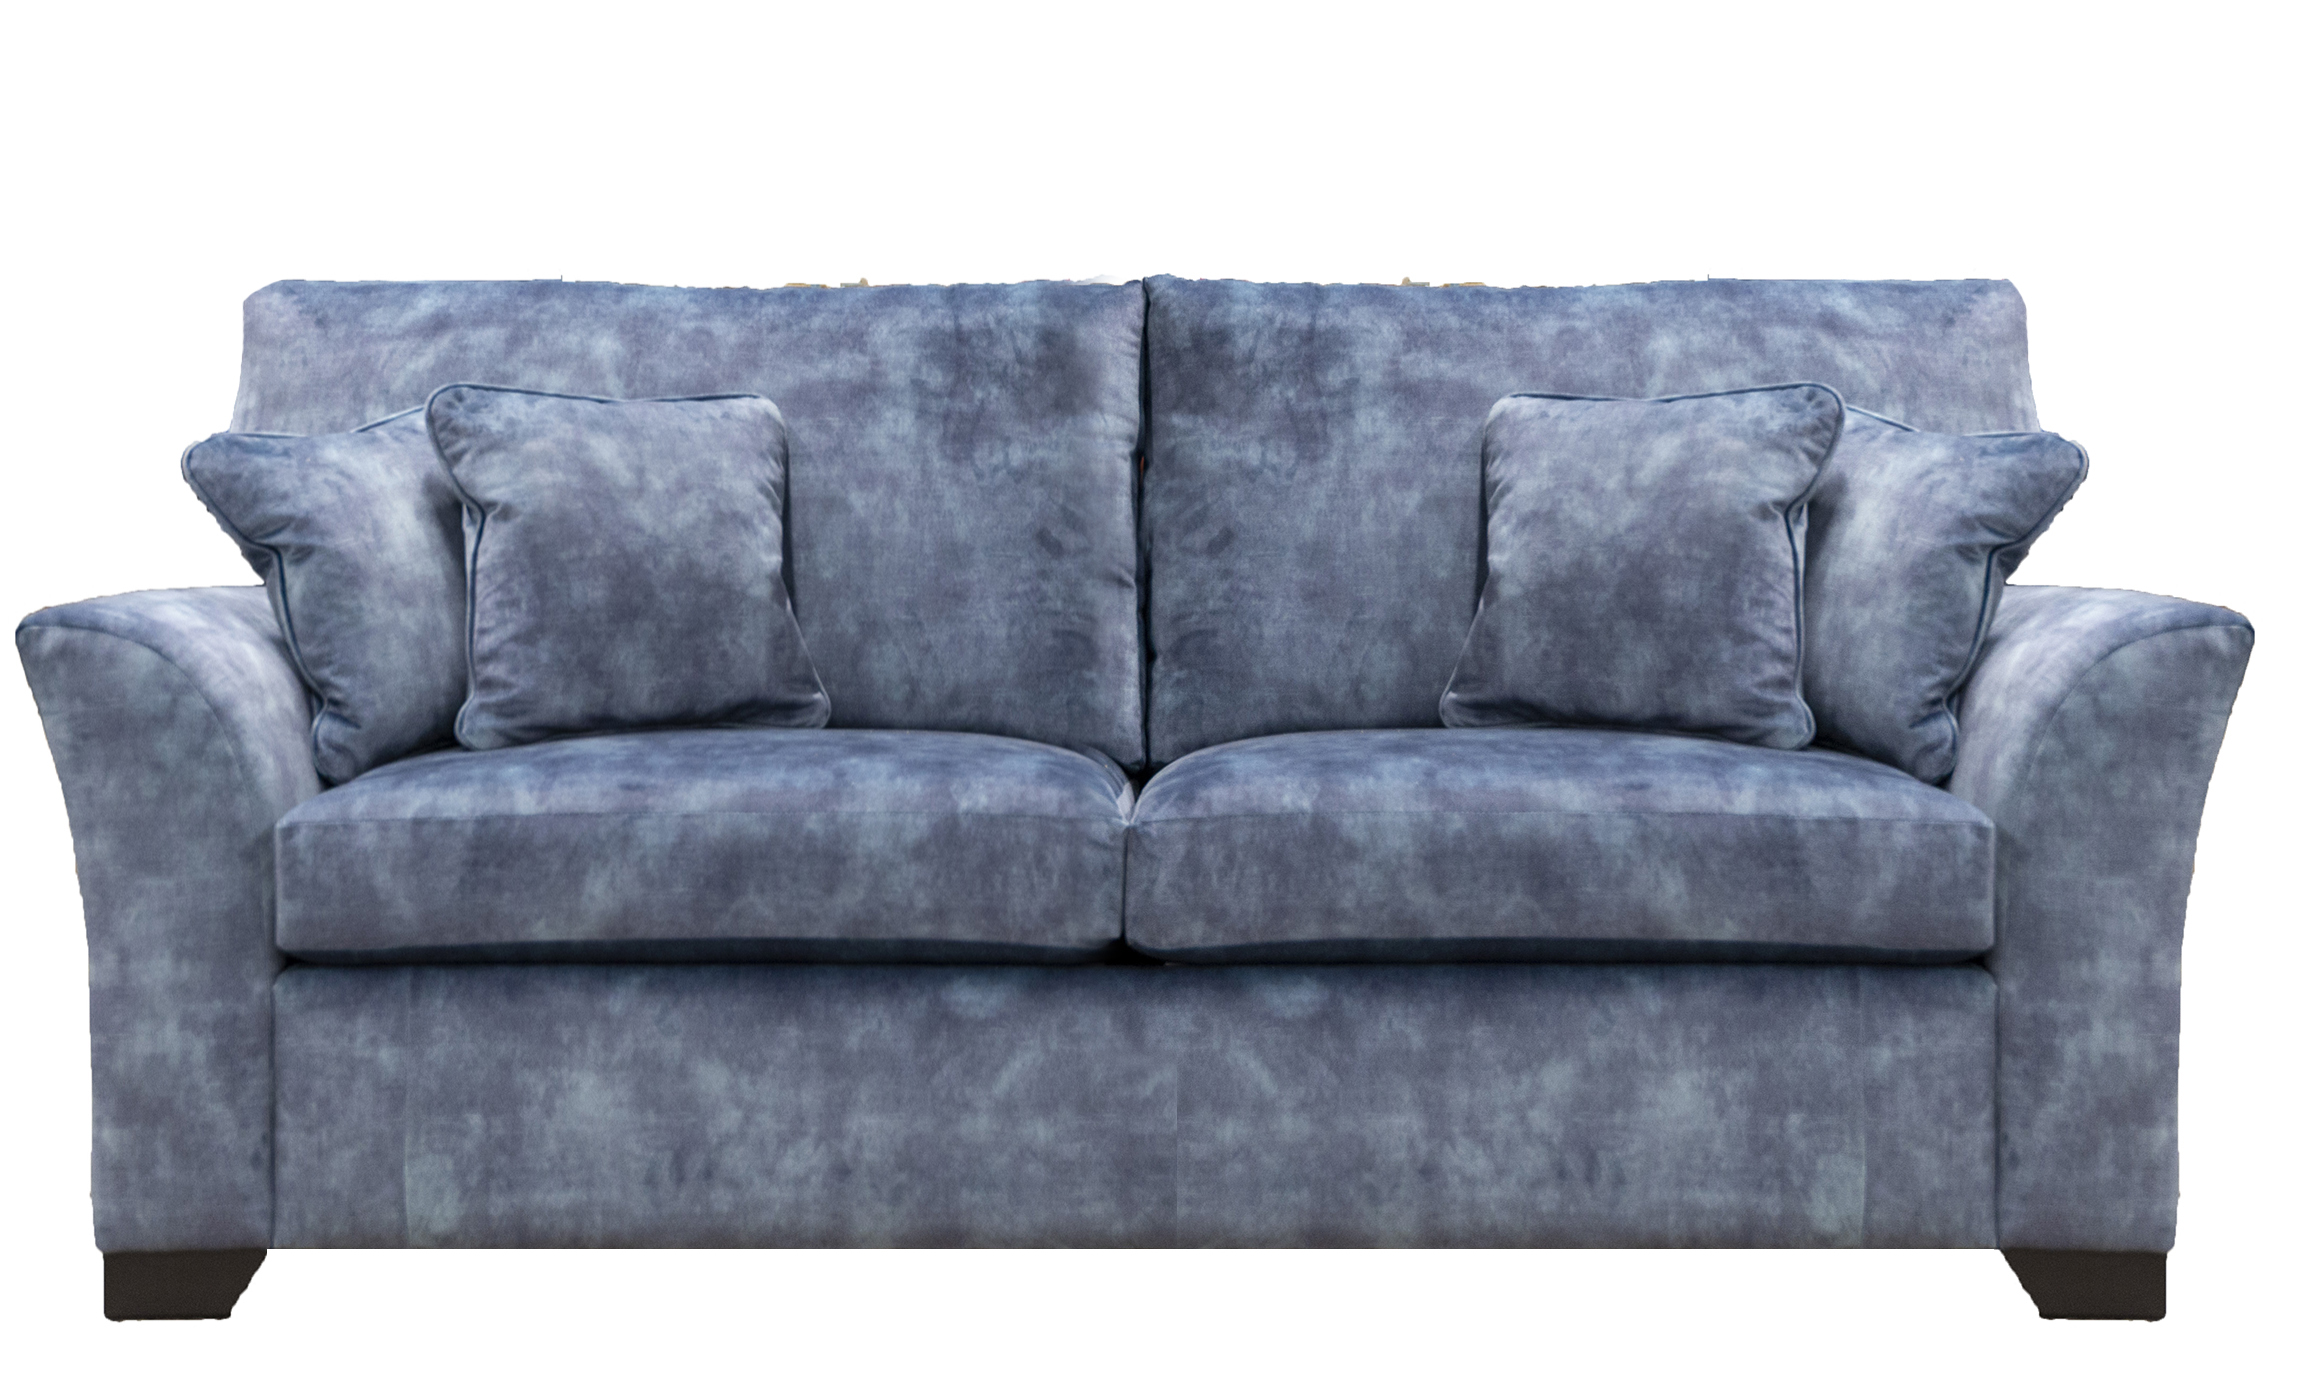 Malton 3 Seater Sofa Side in Lovely Atlantic, Gold Collection Fabric